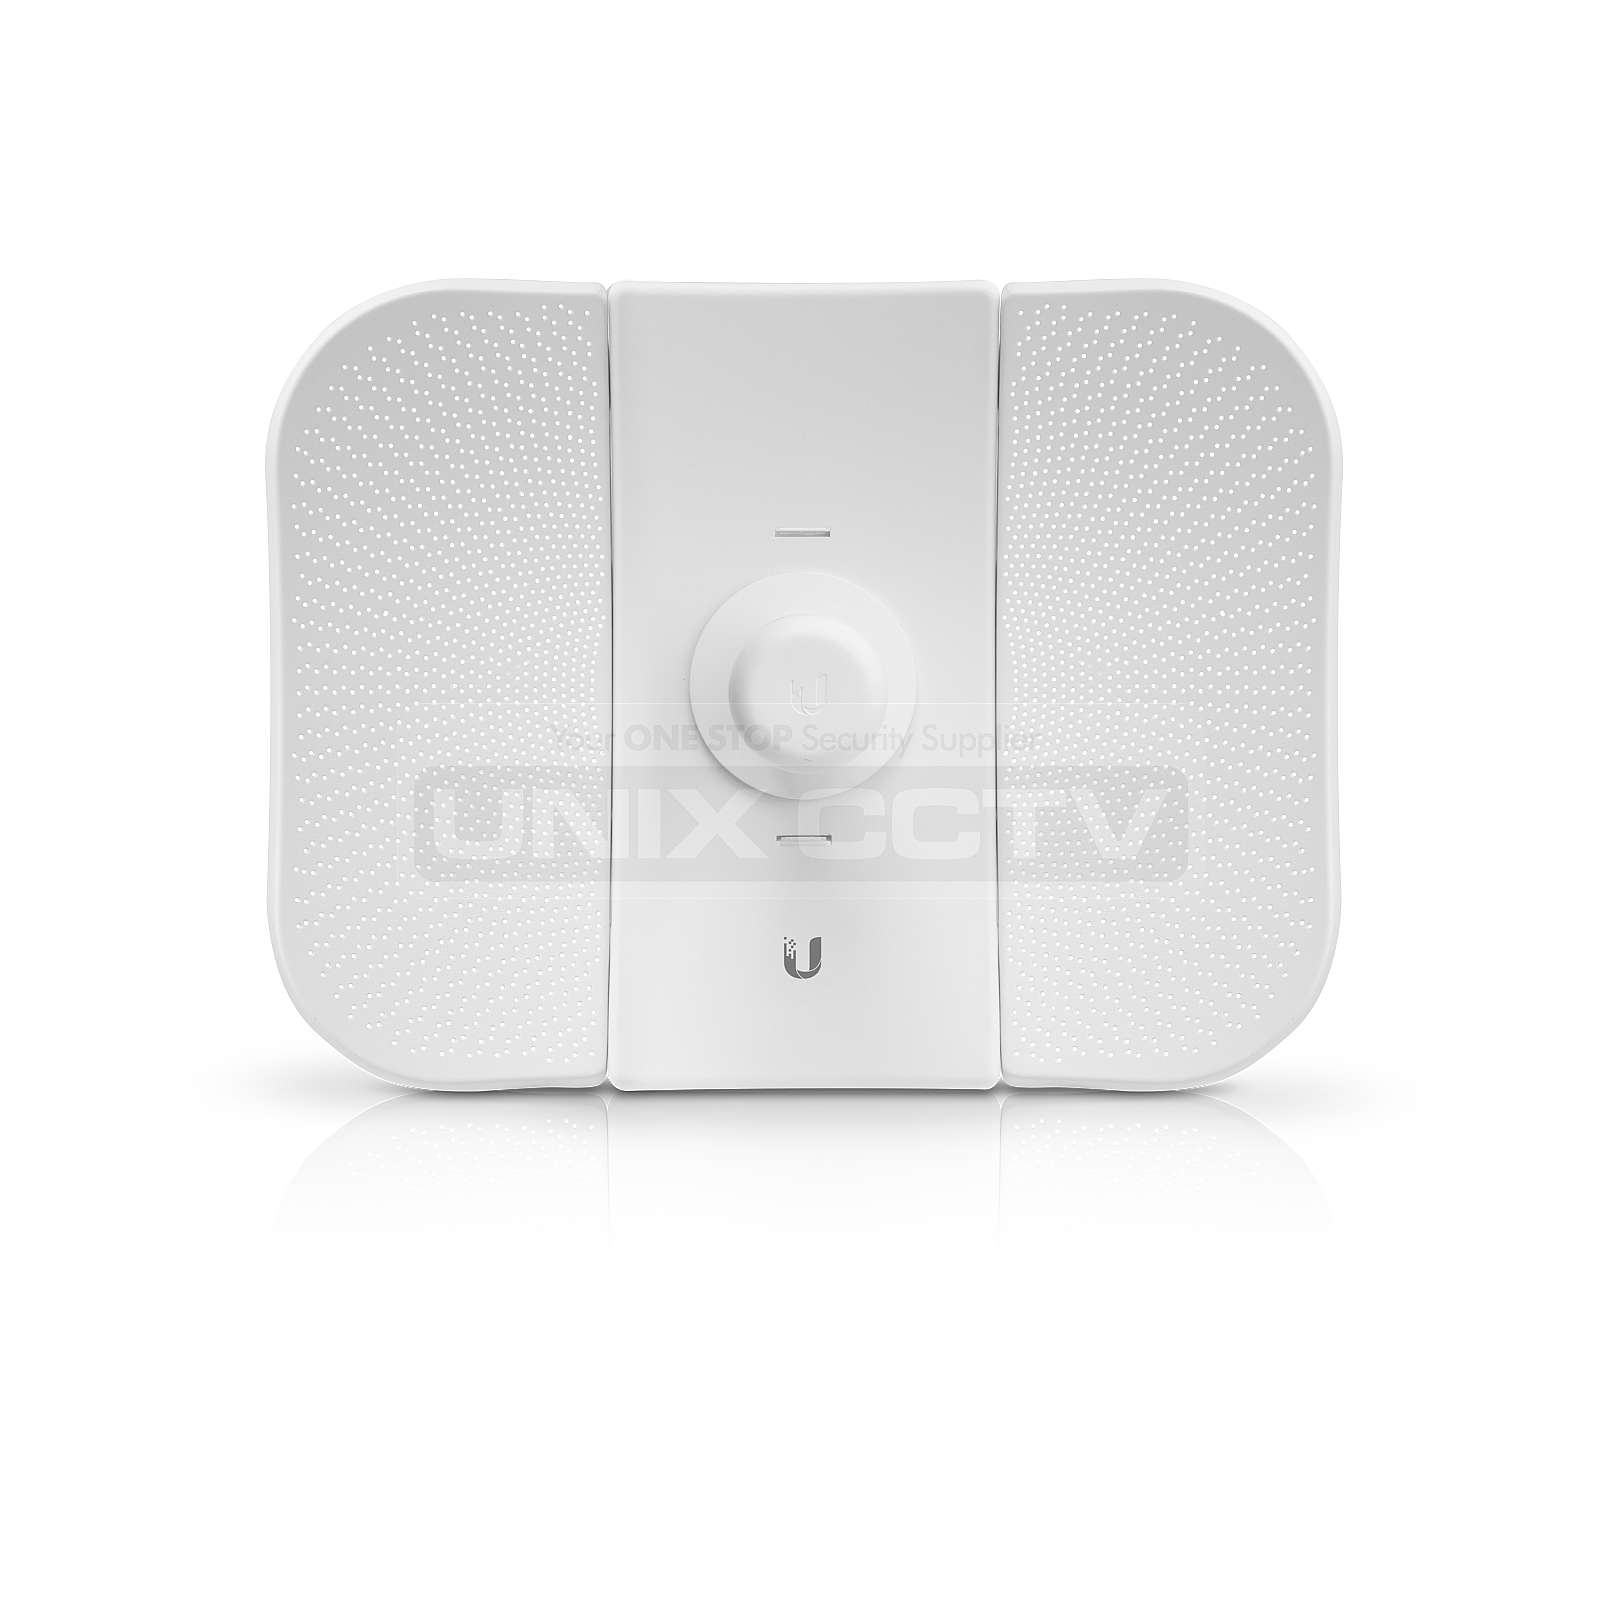 Ubiquiti Unifi AP in-wall Wi-Fi Access Point / 2.4Ghz 150Mbps / PoE ...